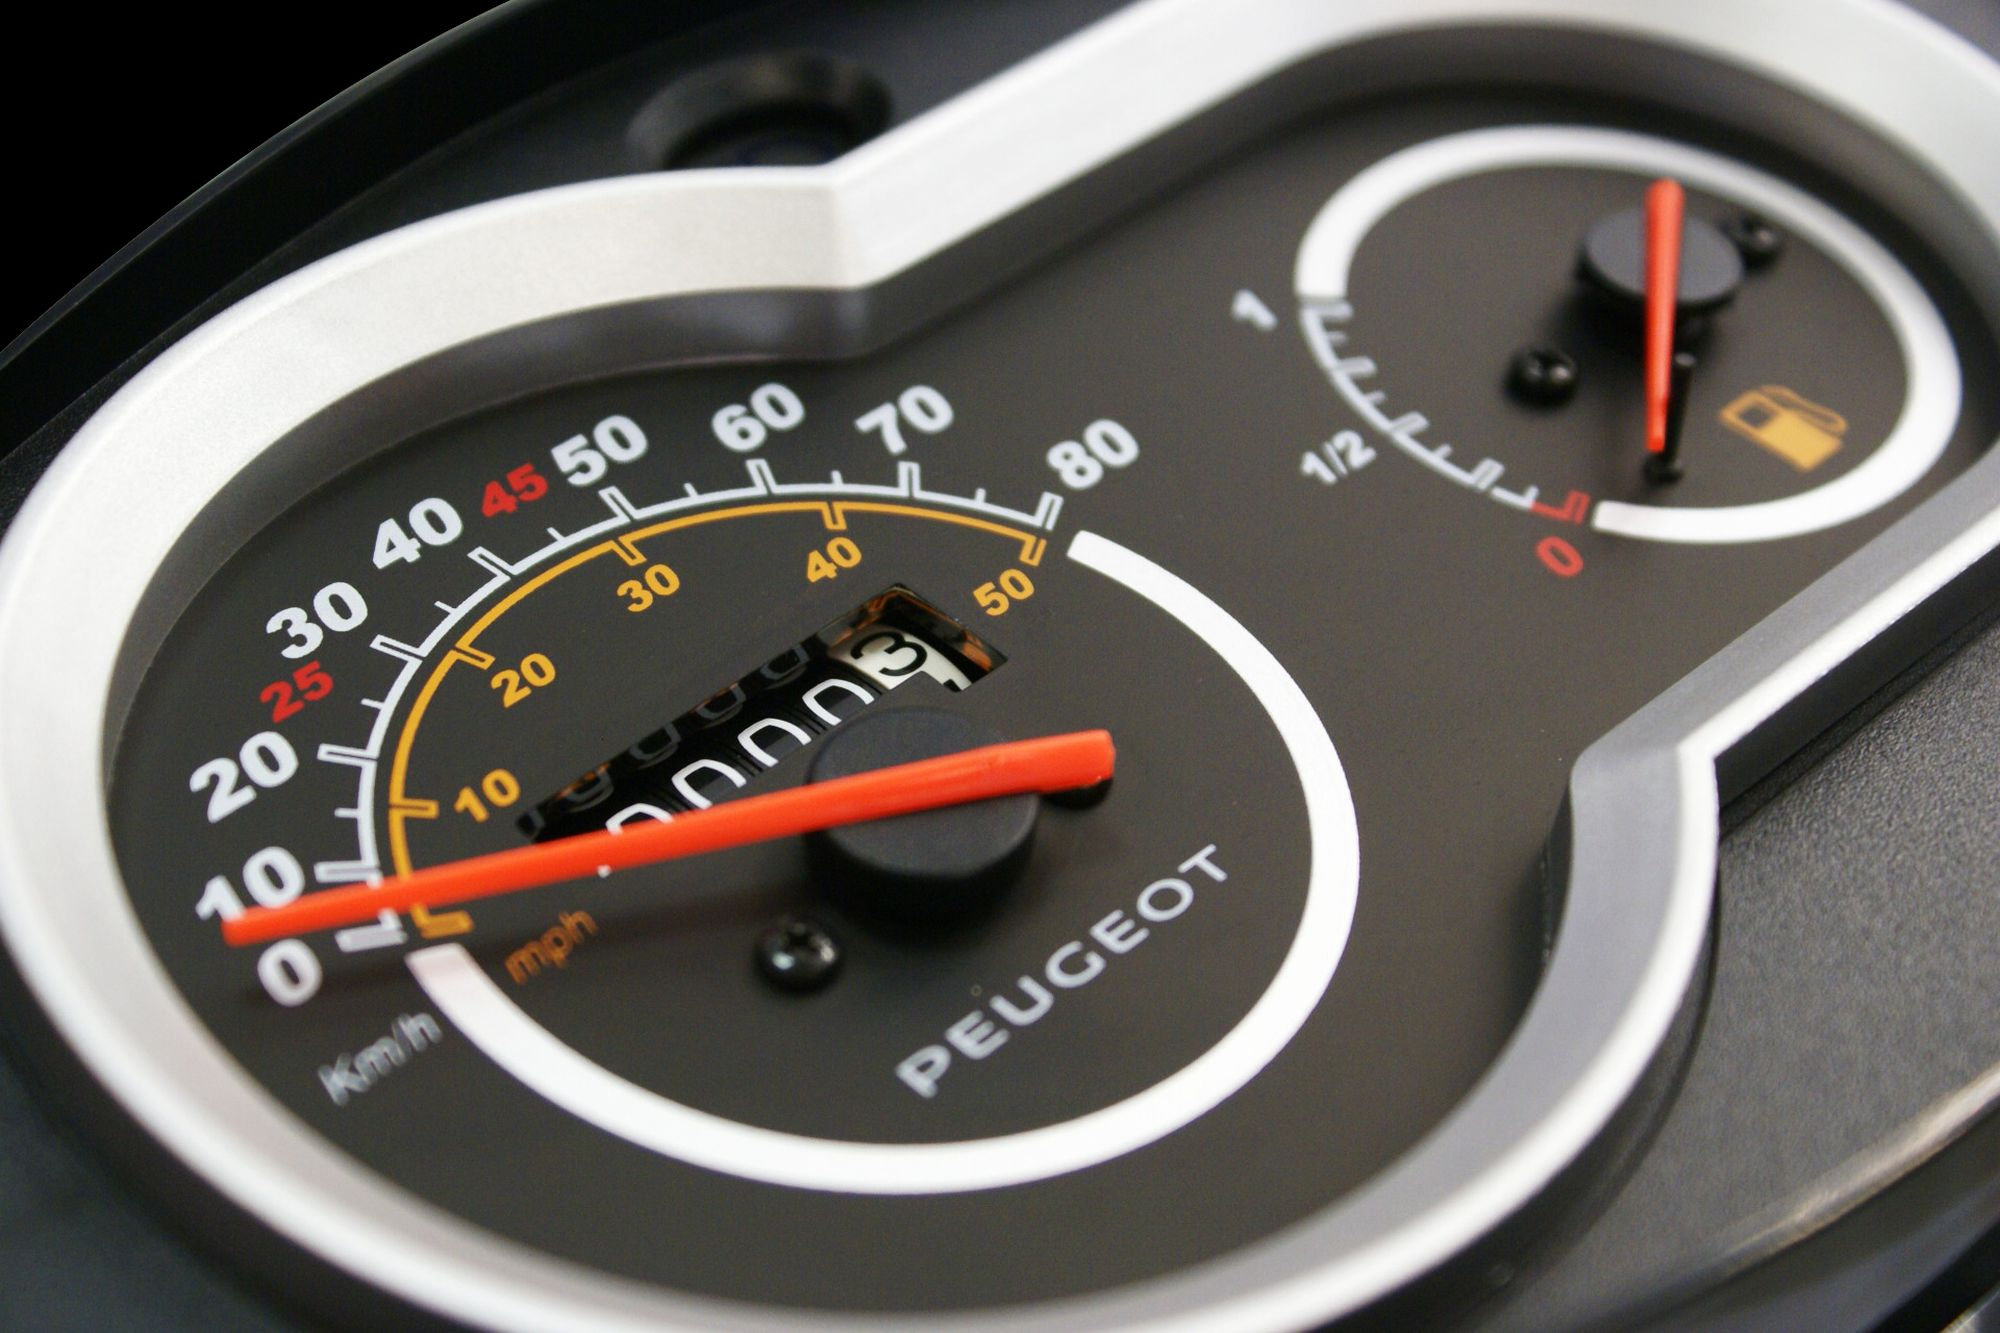 peugeot tweet 50 rs 4t - all technical data of the model tweet 50 rs